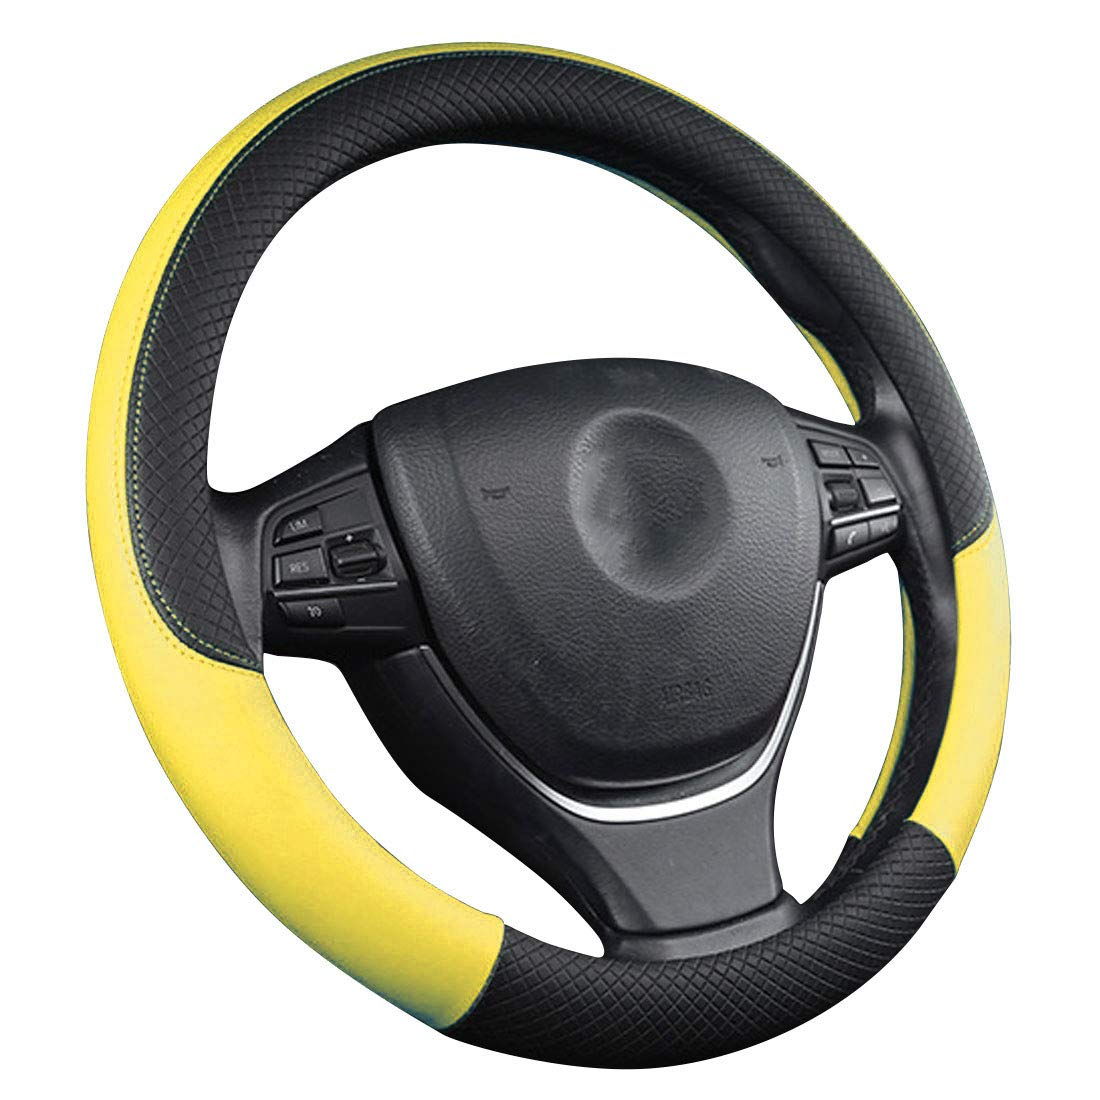 Amazon.com: zzxswc 15inch Car Steering Wheel Cover PU Leather Steering Wheel Cover Soft Padding Anti-Slip Design Universal Fit Most Car (Yellow): Automotive